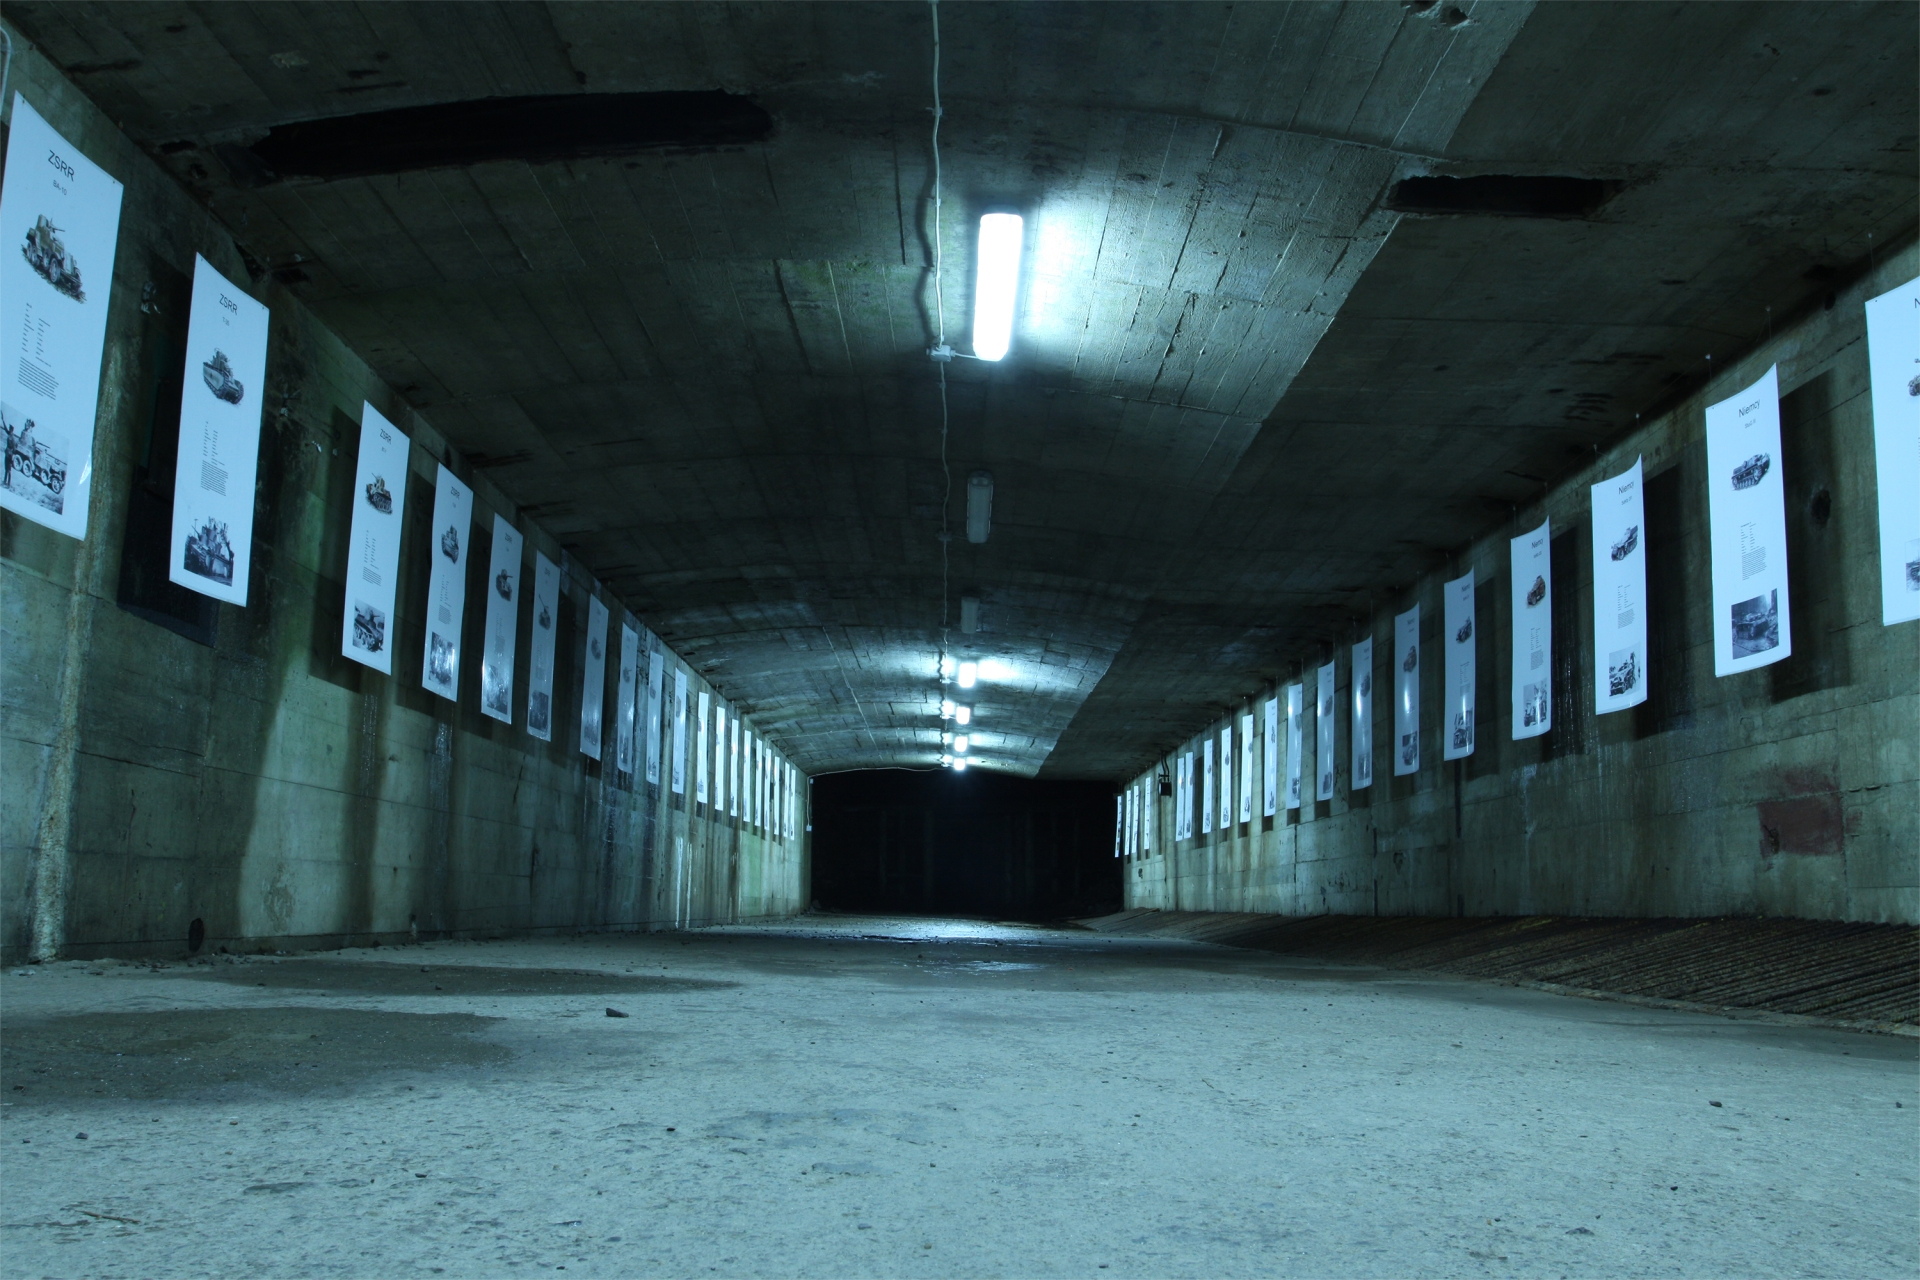 Project Riese: The Nazis' Half-Finished Underground City